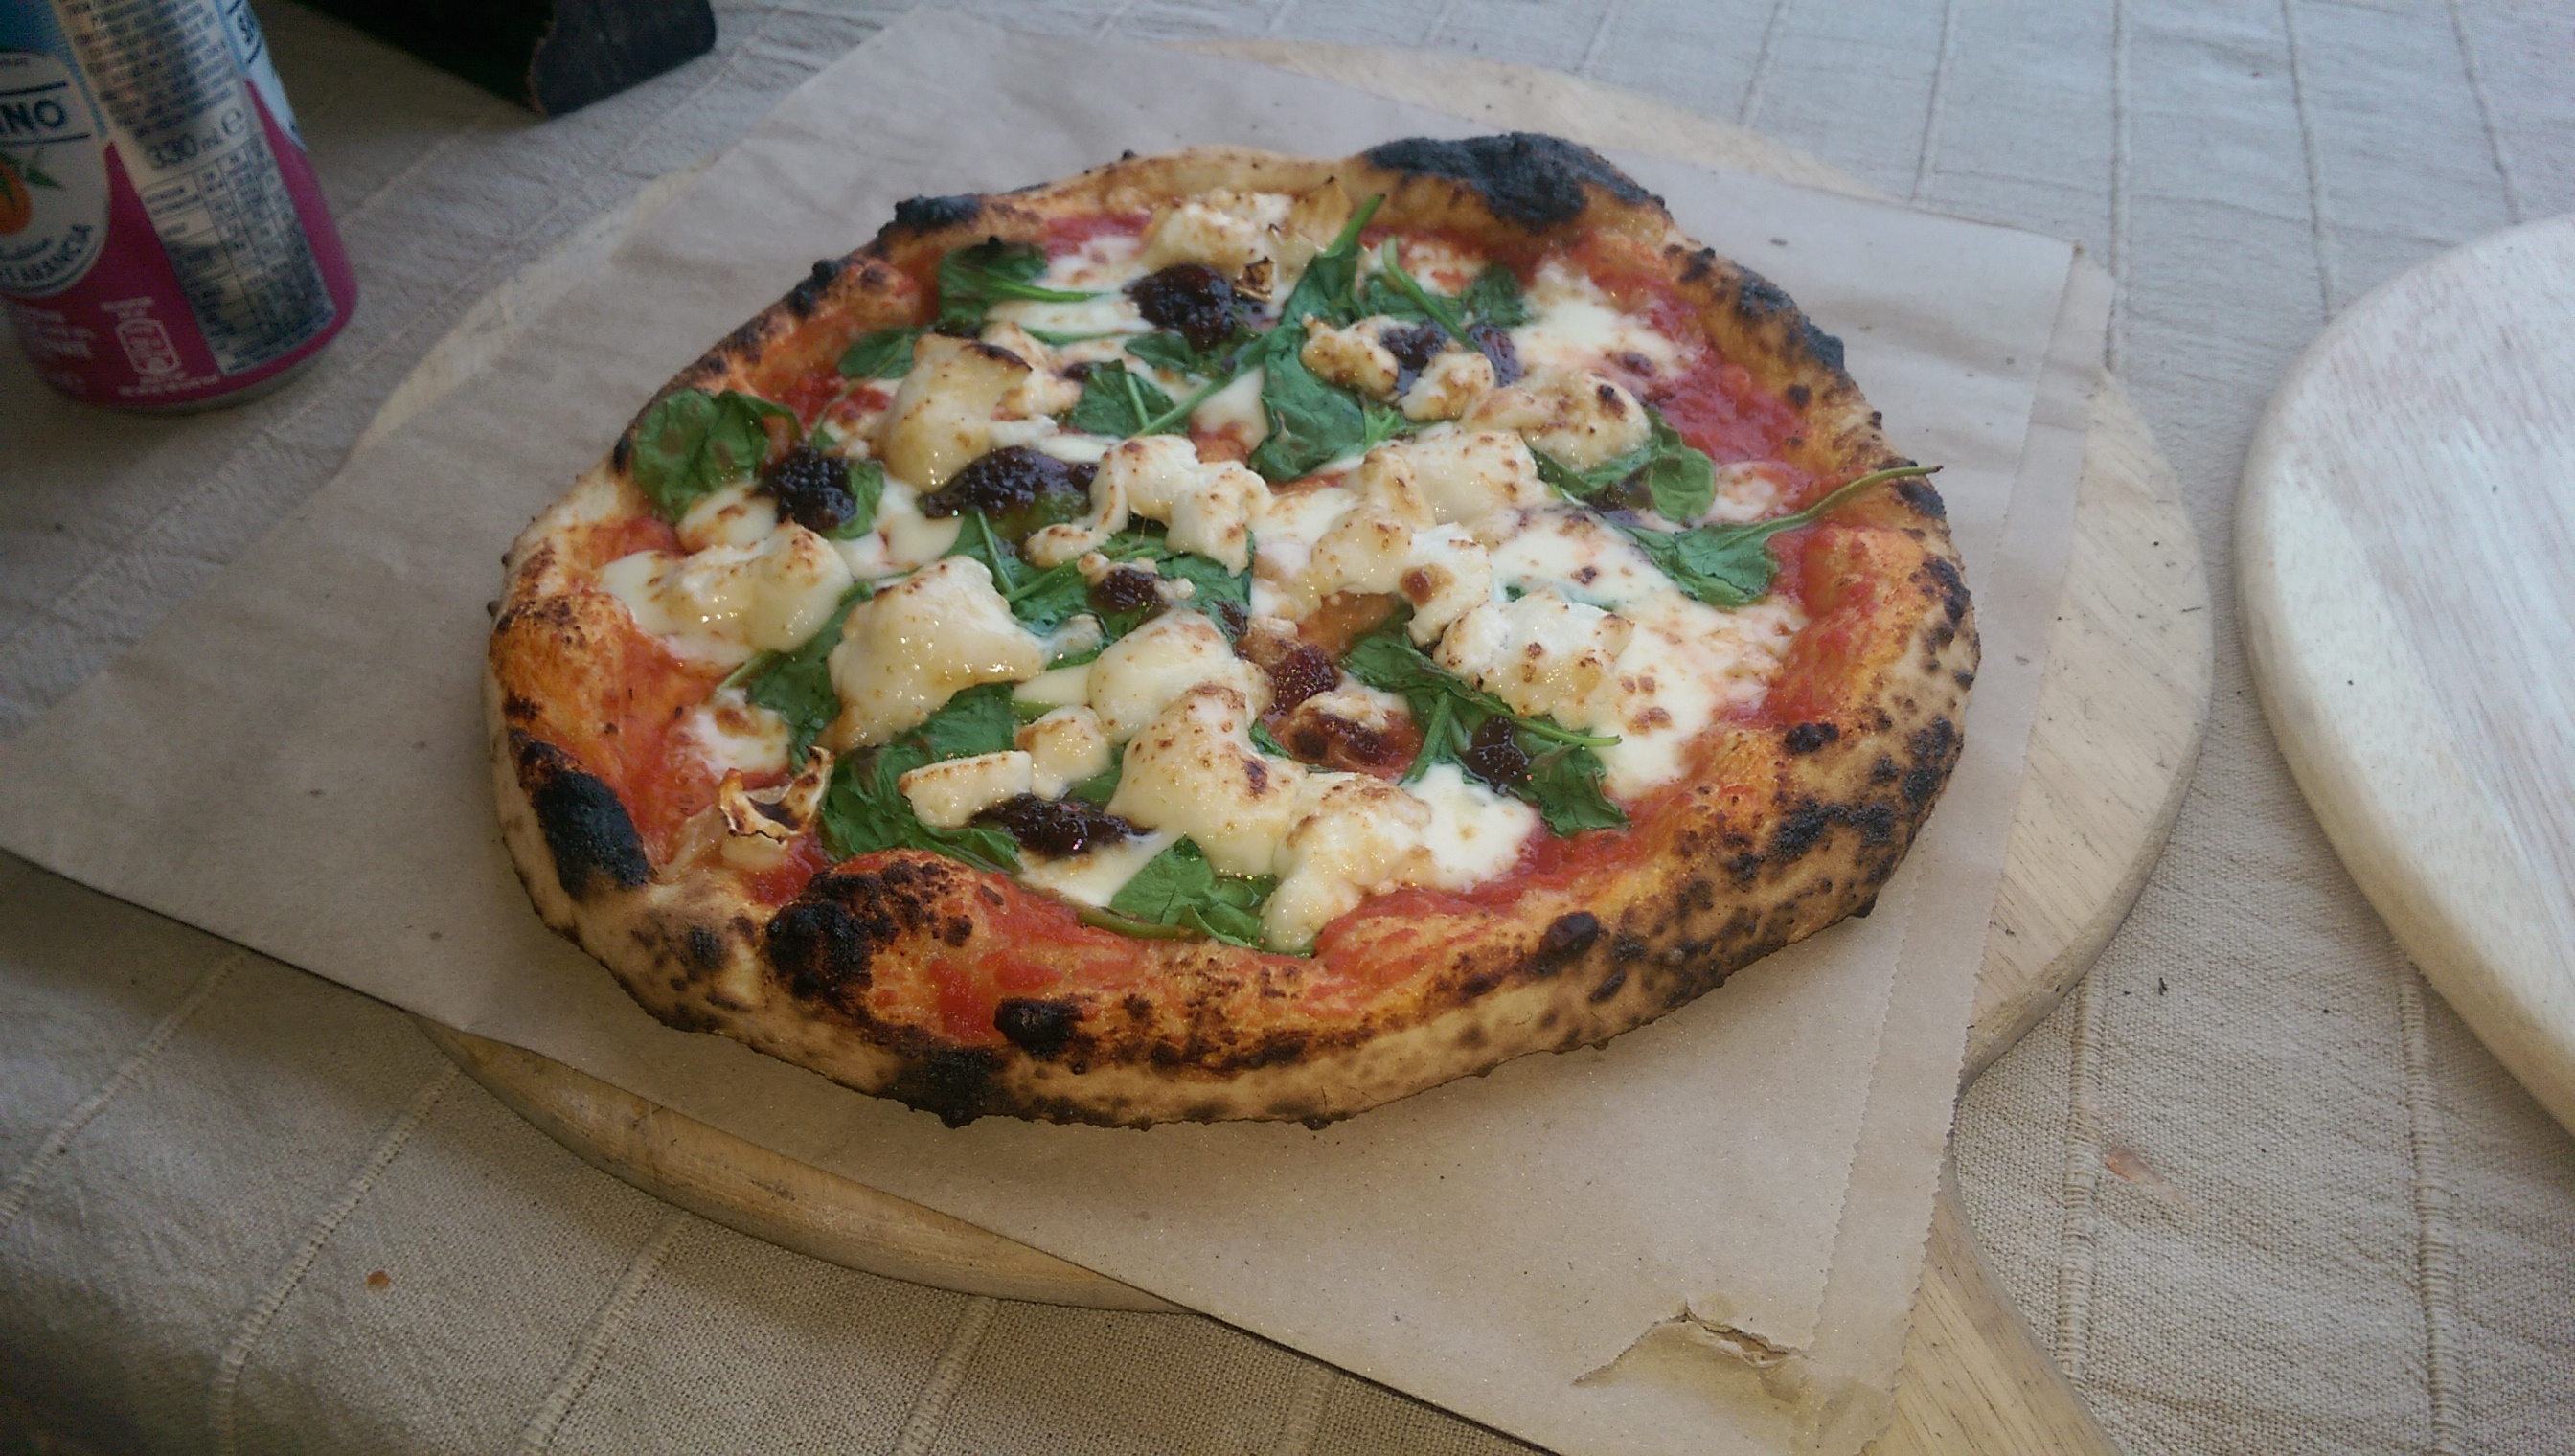 Goat's cheese wood fired pizza